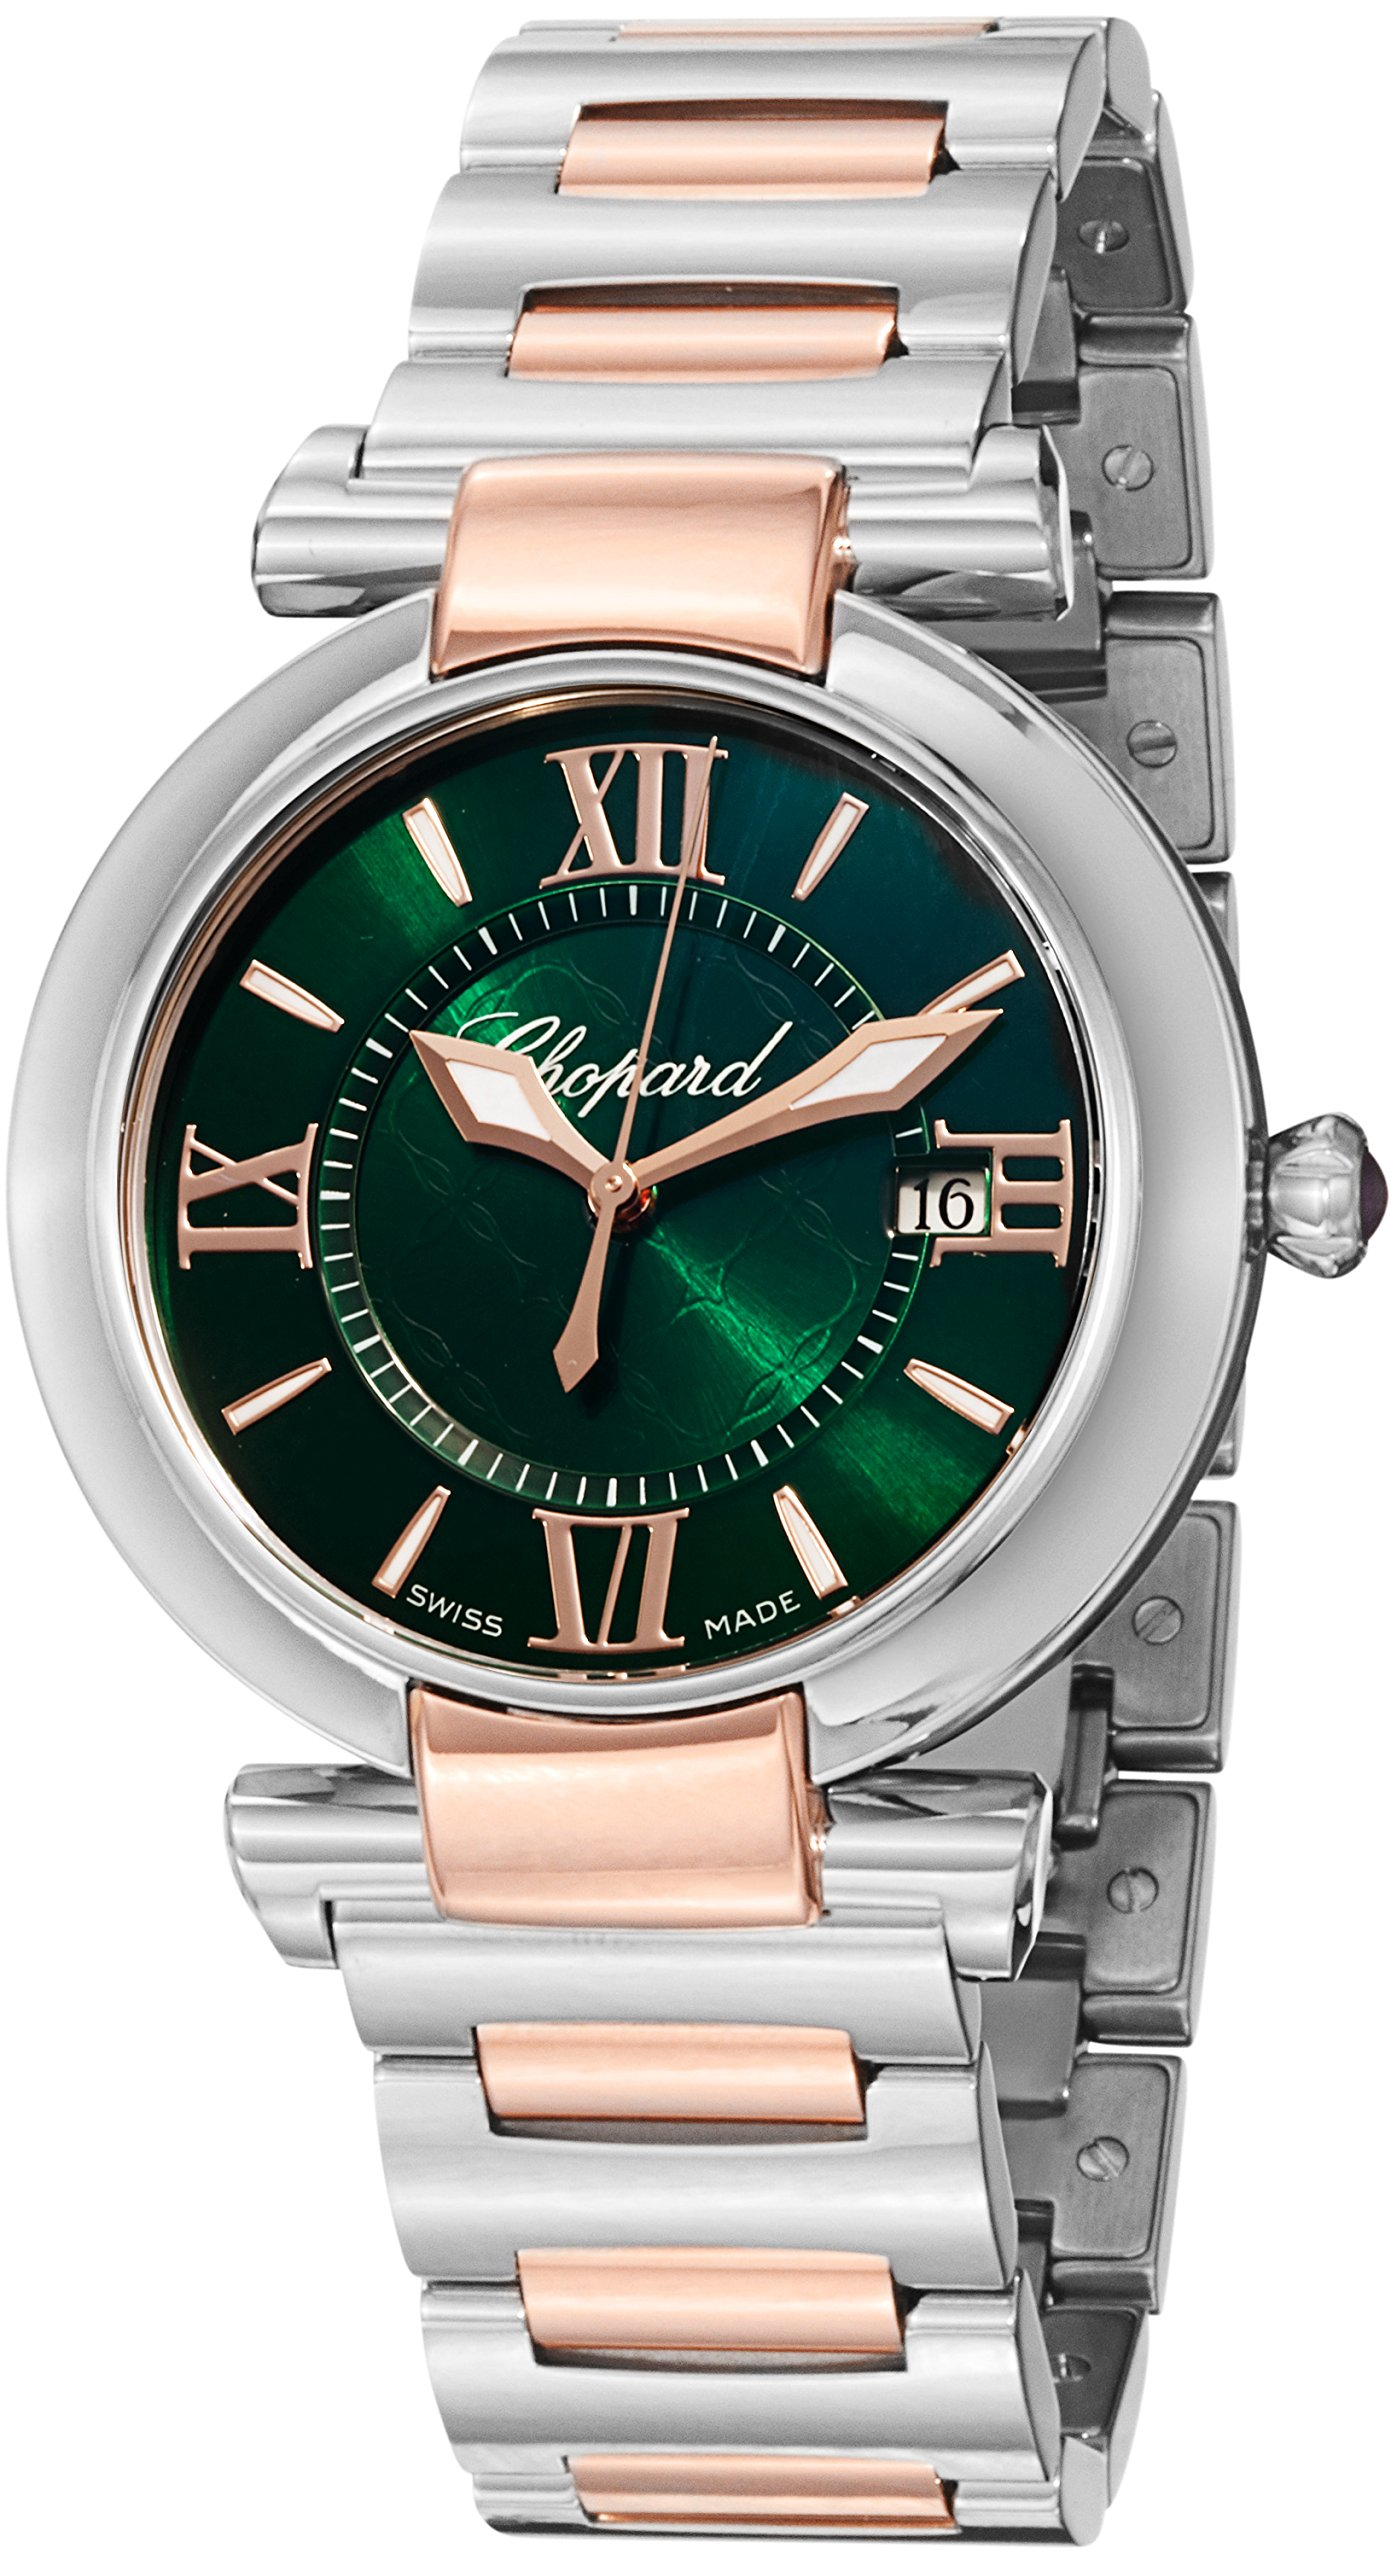 Chopard Imperiale Large Green Dial Two Tone Swiss Made Watch 388532-6007